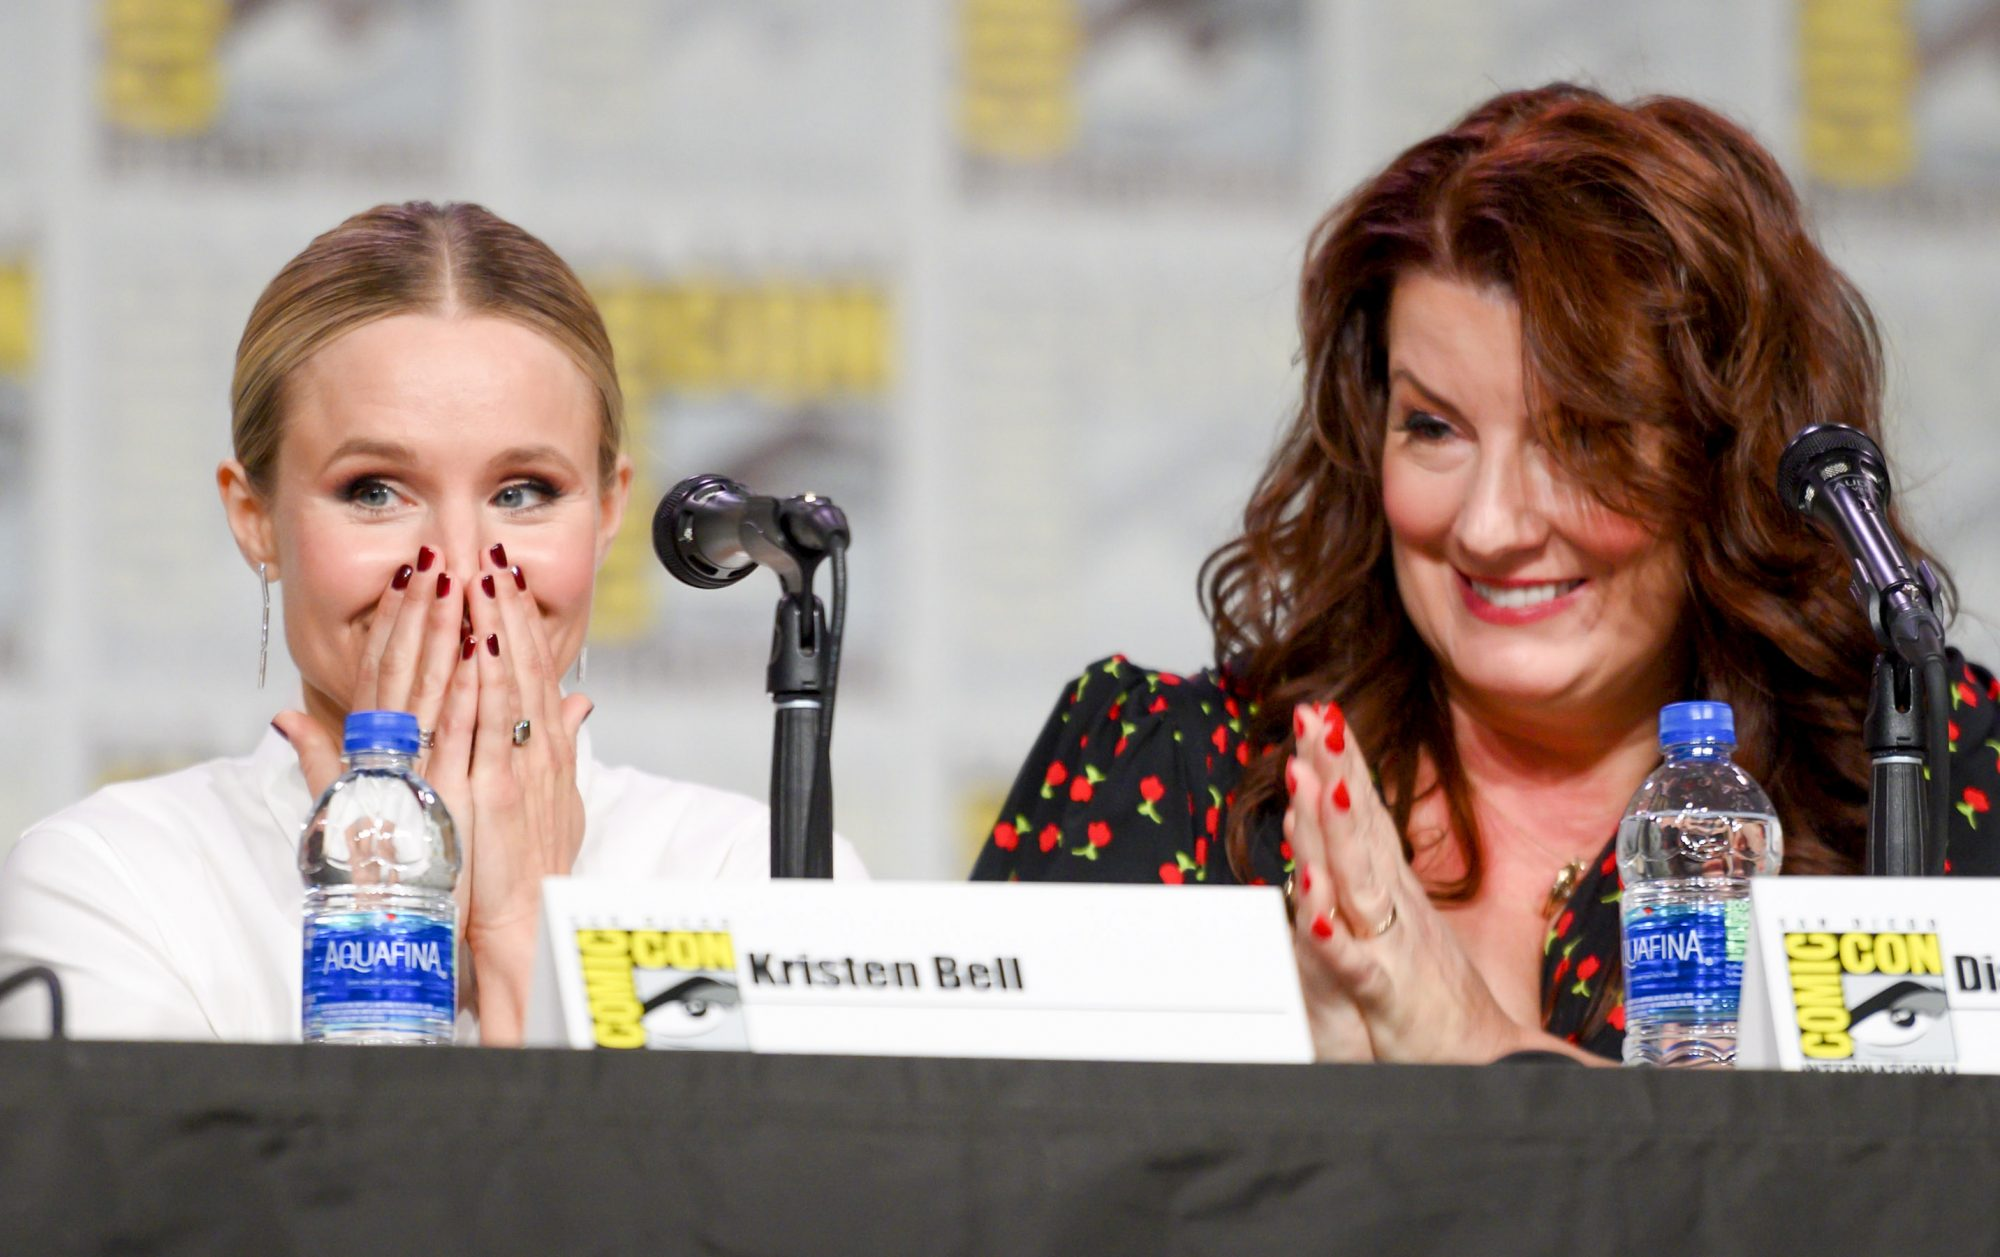 """SAN DIEGO, CALIFORNIA - JULY 19: Kristen Bell and Diane-Ruggiero Wright attend Hulu's """"Veronica Mars"""" revival panel and world premiere during 2019 Comic-Con International at San Diego Convention Center on July 19, 2019 in San Diego, California. (Photo by Daniel Boczarski/Getty Images for Hulu)"""